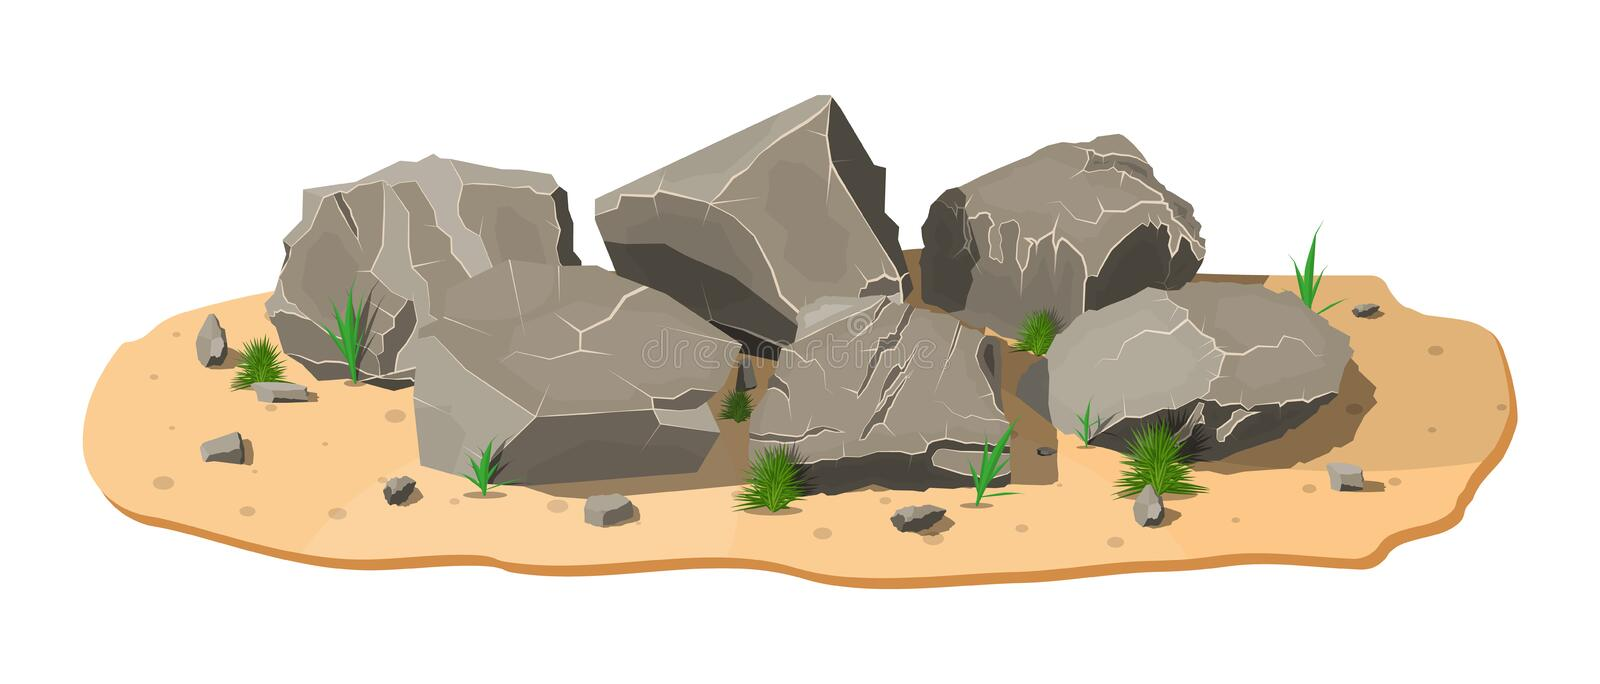 Pile of rock stone with grass on sand. vector illustration